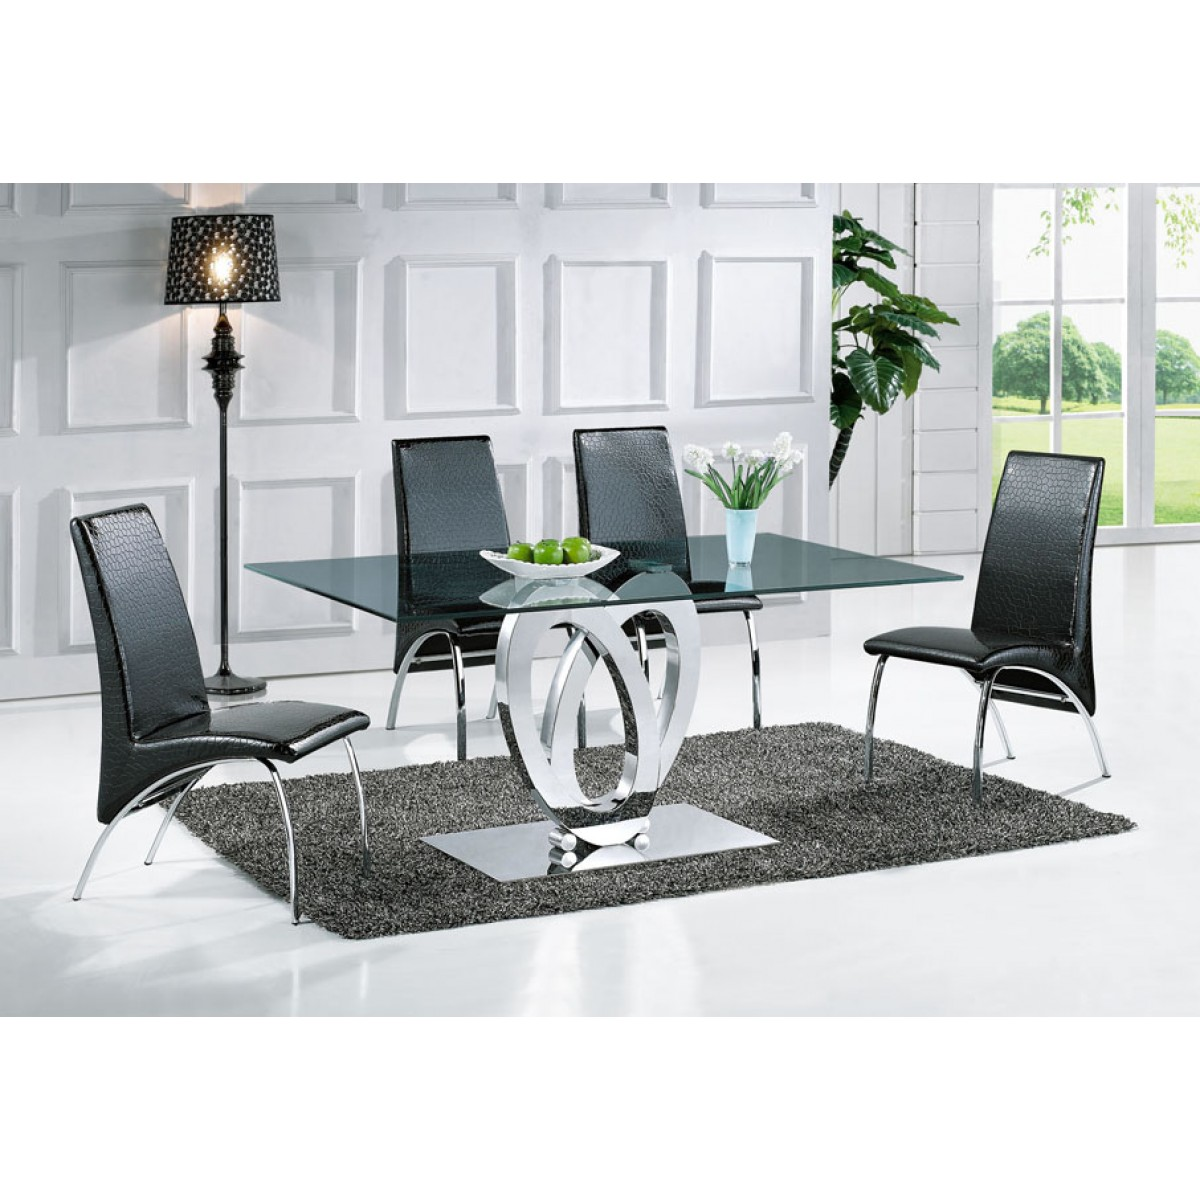 table de salle manger design ellipse taille au choix tables de salle manger tables. Black Bedroom Furniture Sets. Home Design Ideas